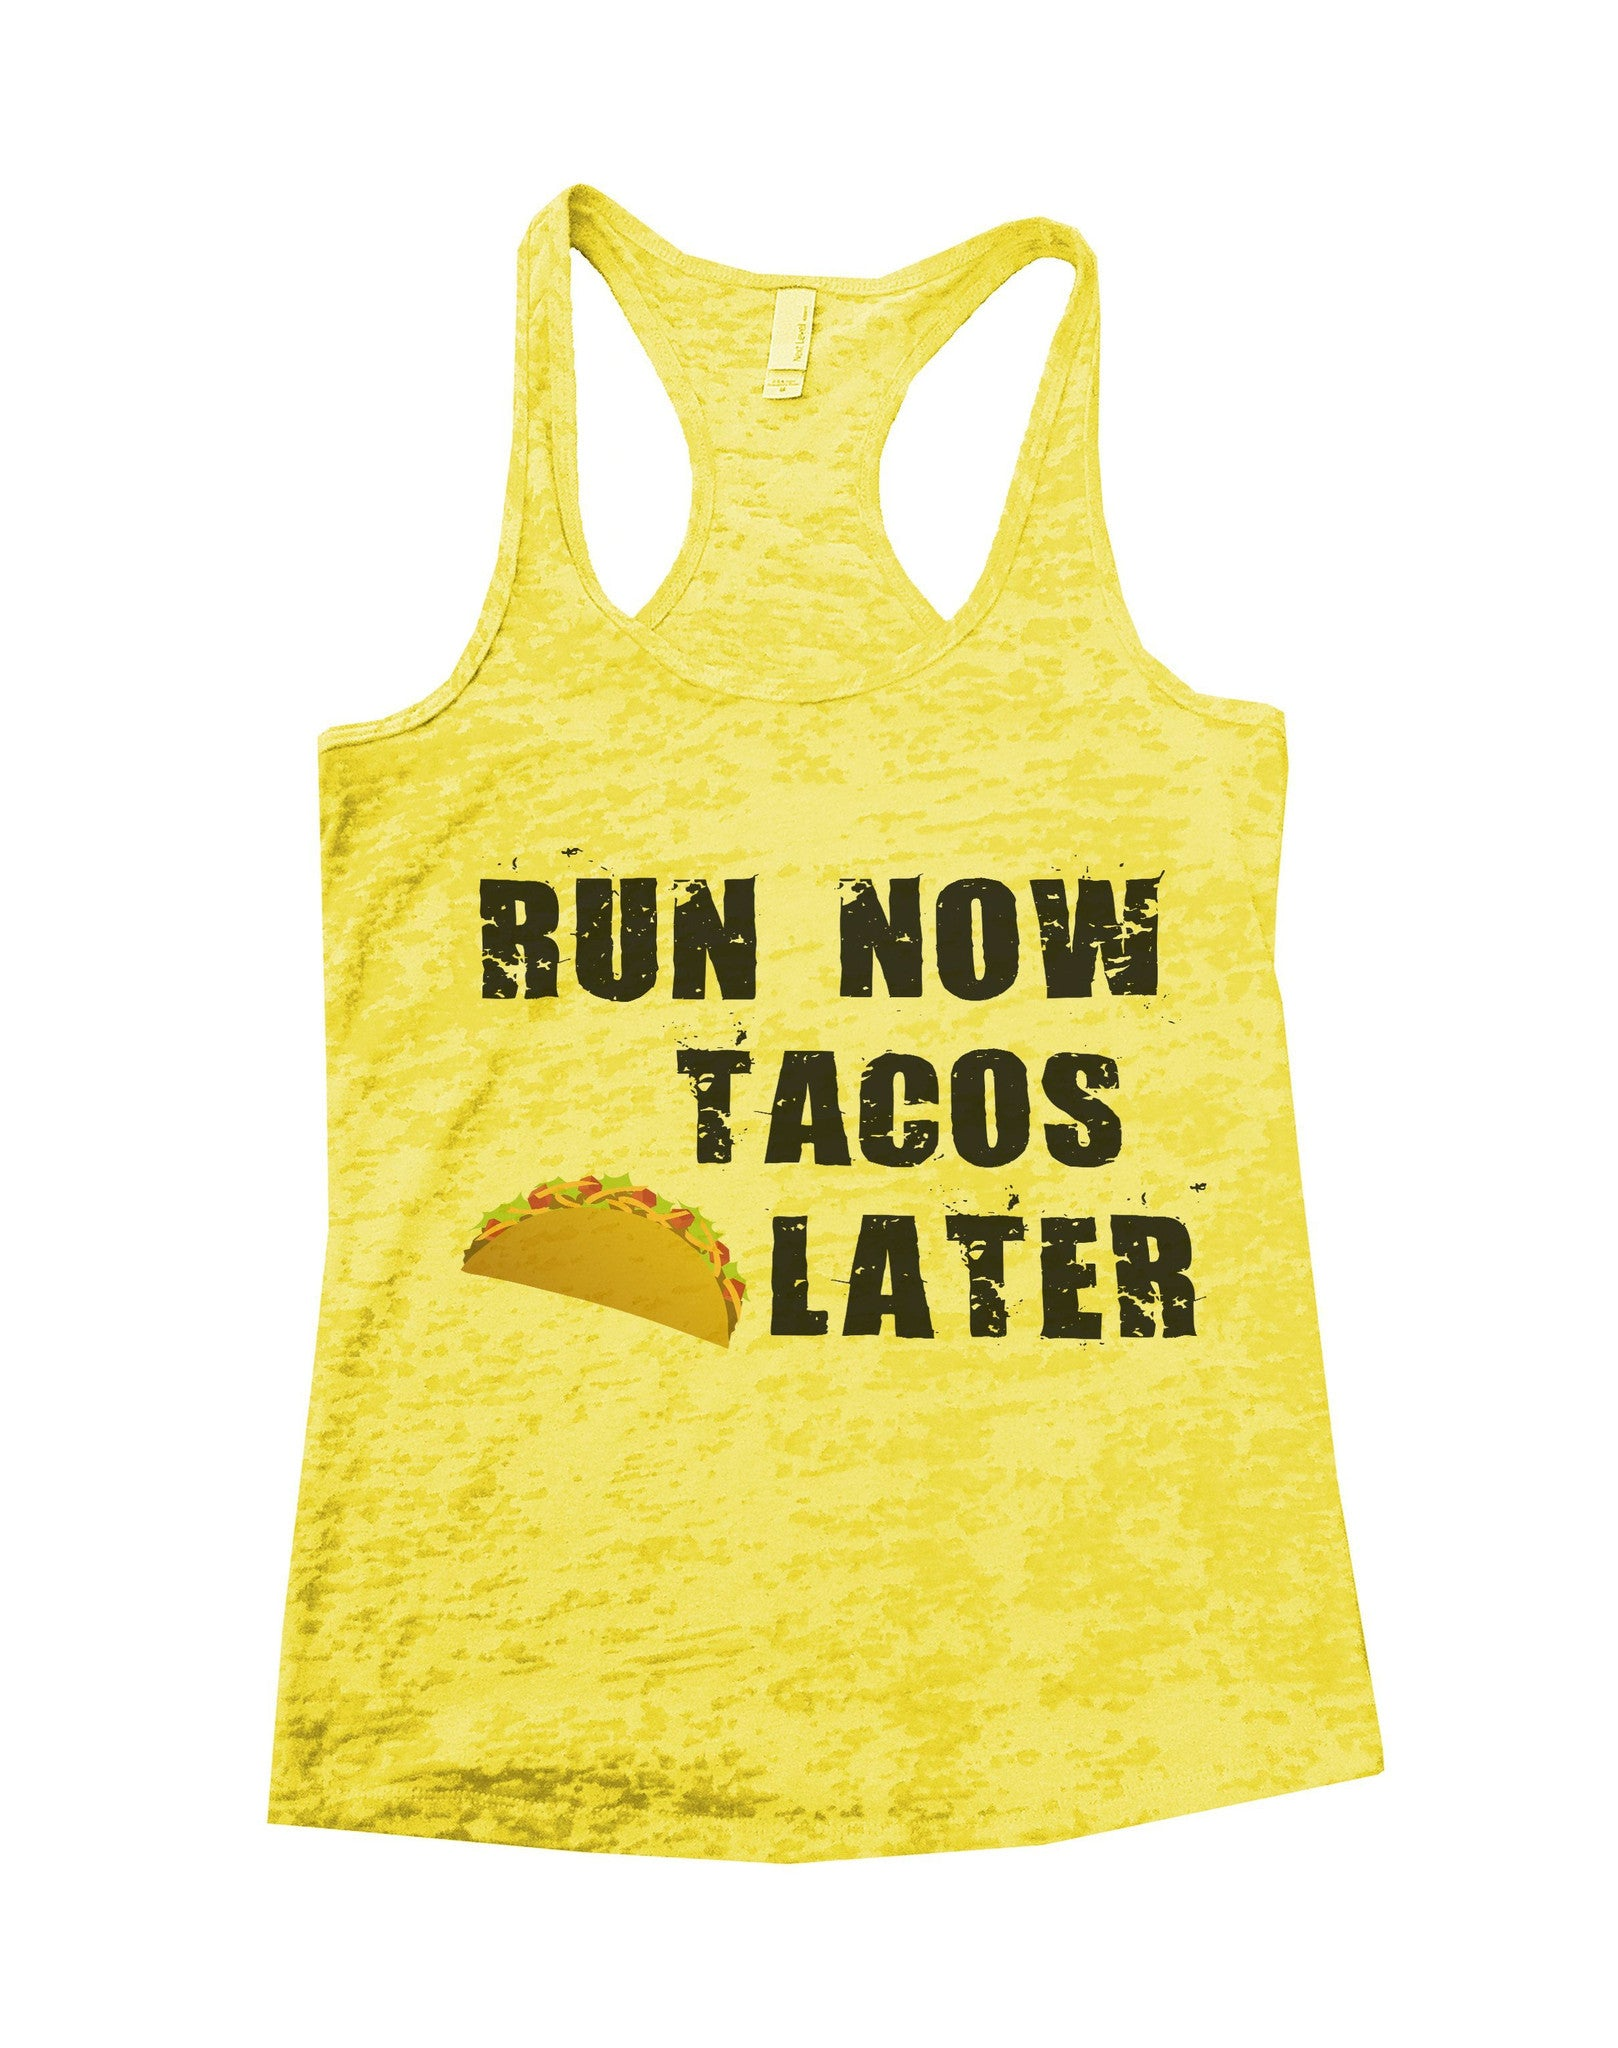 Run Now Tacos Later Burnout Tank Top By BurnoutTankTops.com - 650 - Funny Shirts Tank Tops Burnouts and Triblends  - 6